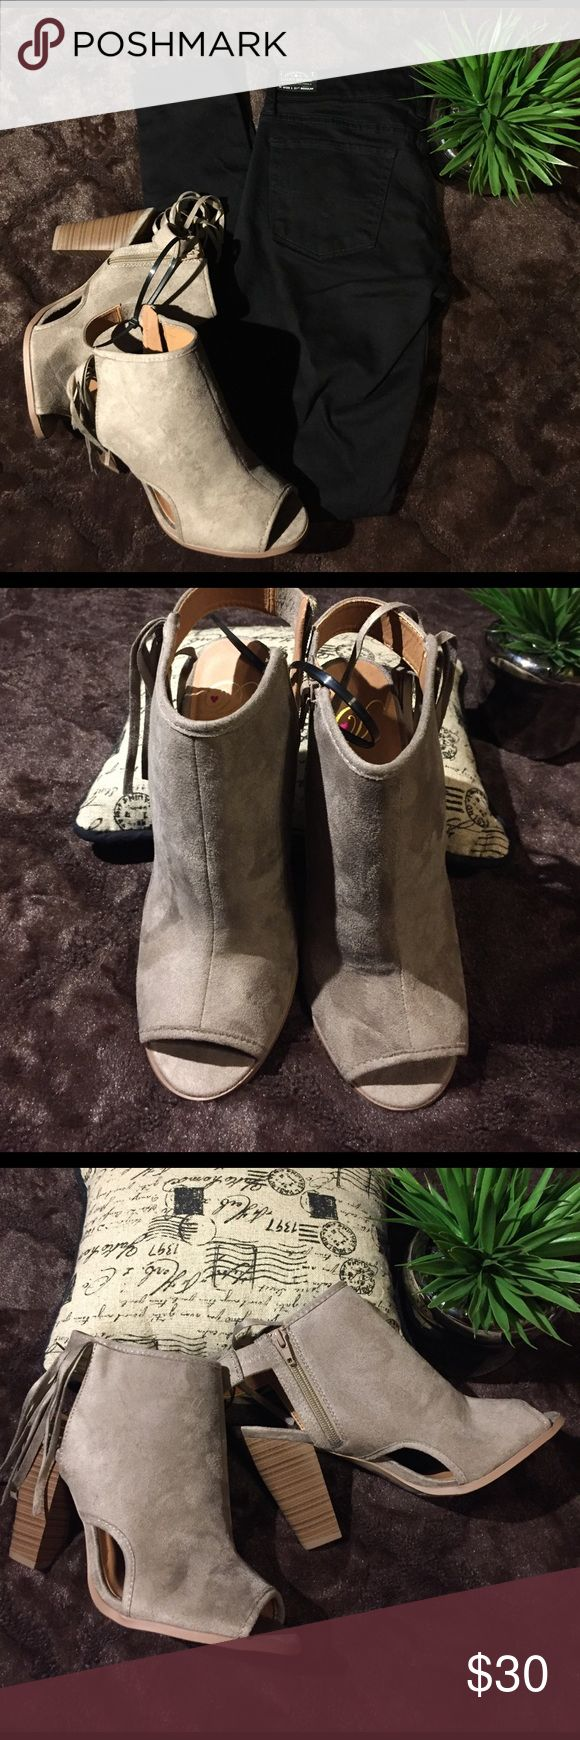 NWOT Faux Suede Fringed Open Toe Taupe Bootie, 9 Trendy & stylish! Step on the scene in these bad boys. inside zipper closure. Fringed tassels on the side. All man made materials. 4' heel. Derek Heart Shoes Ankle Boots & Booties